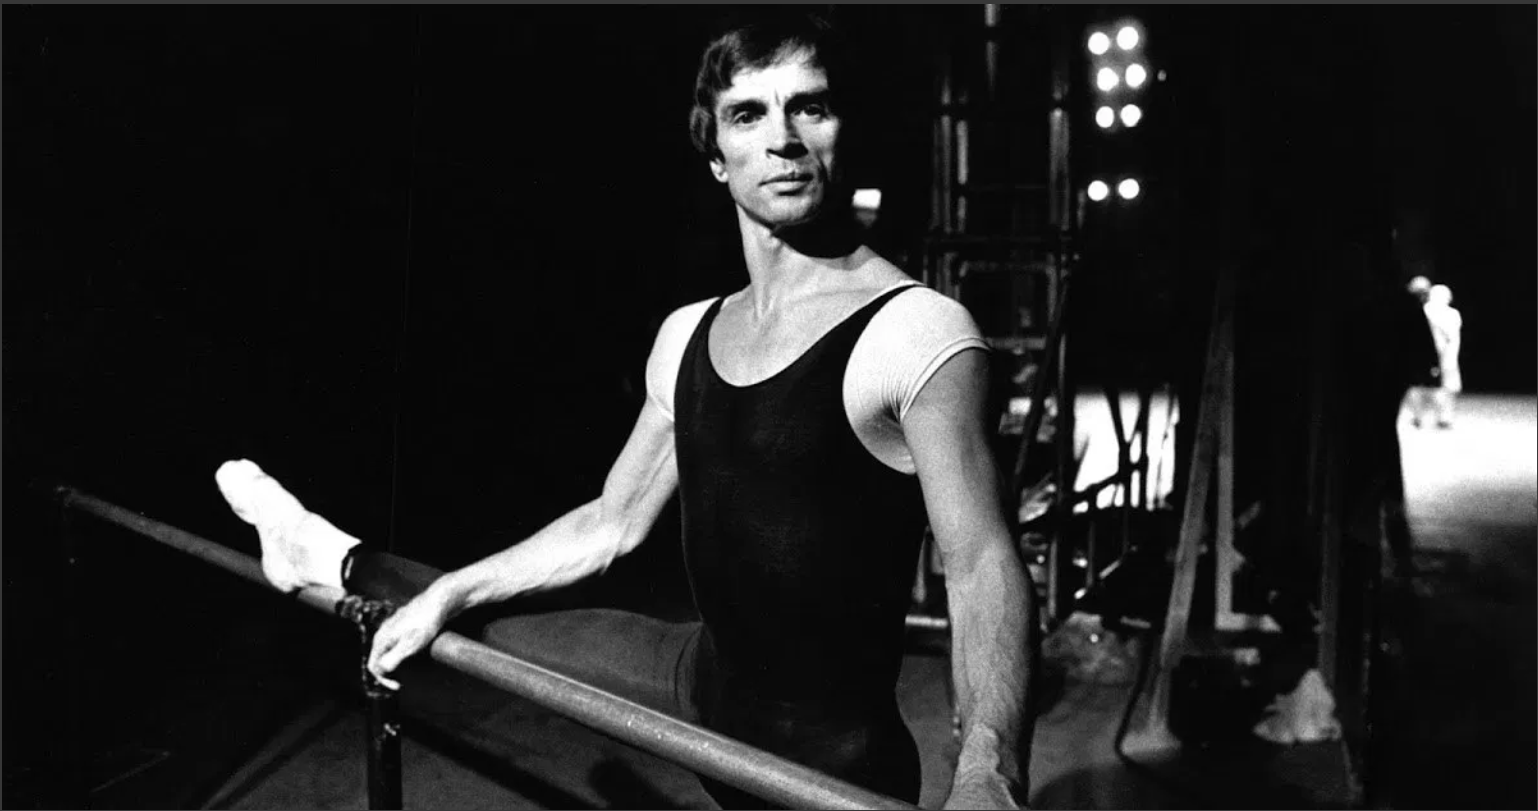 Documentary – Nureyev by Jacqui and David Morris (2018)